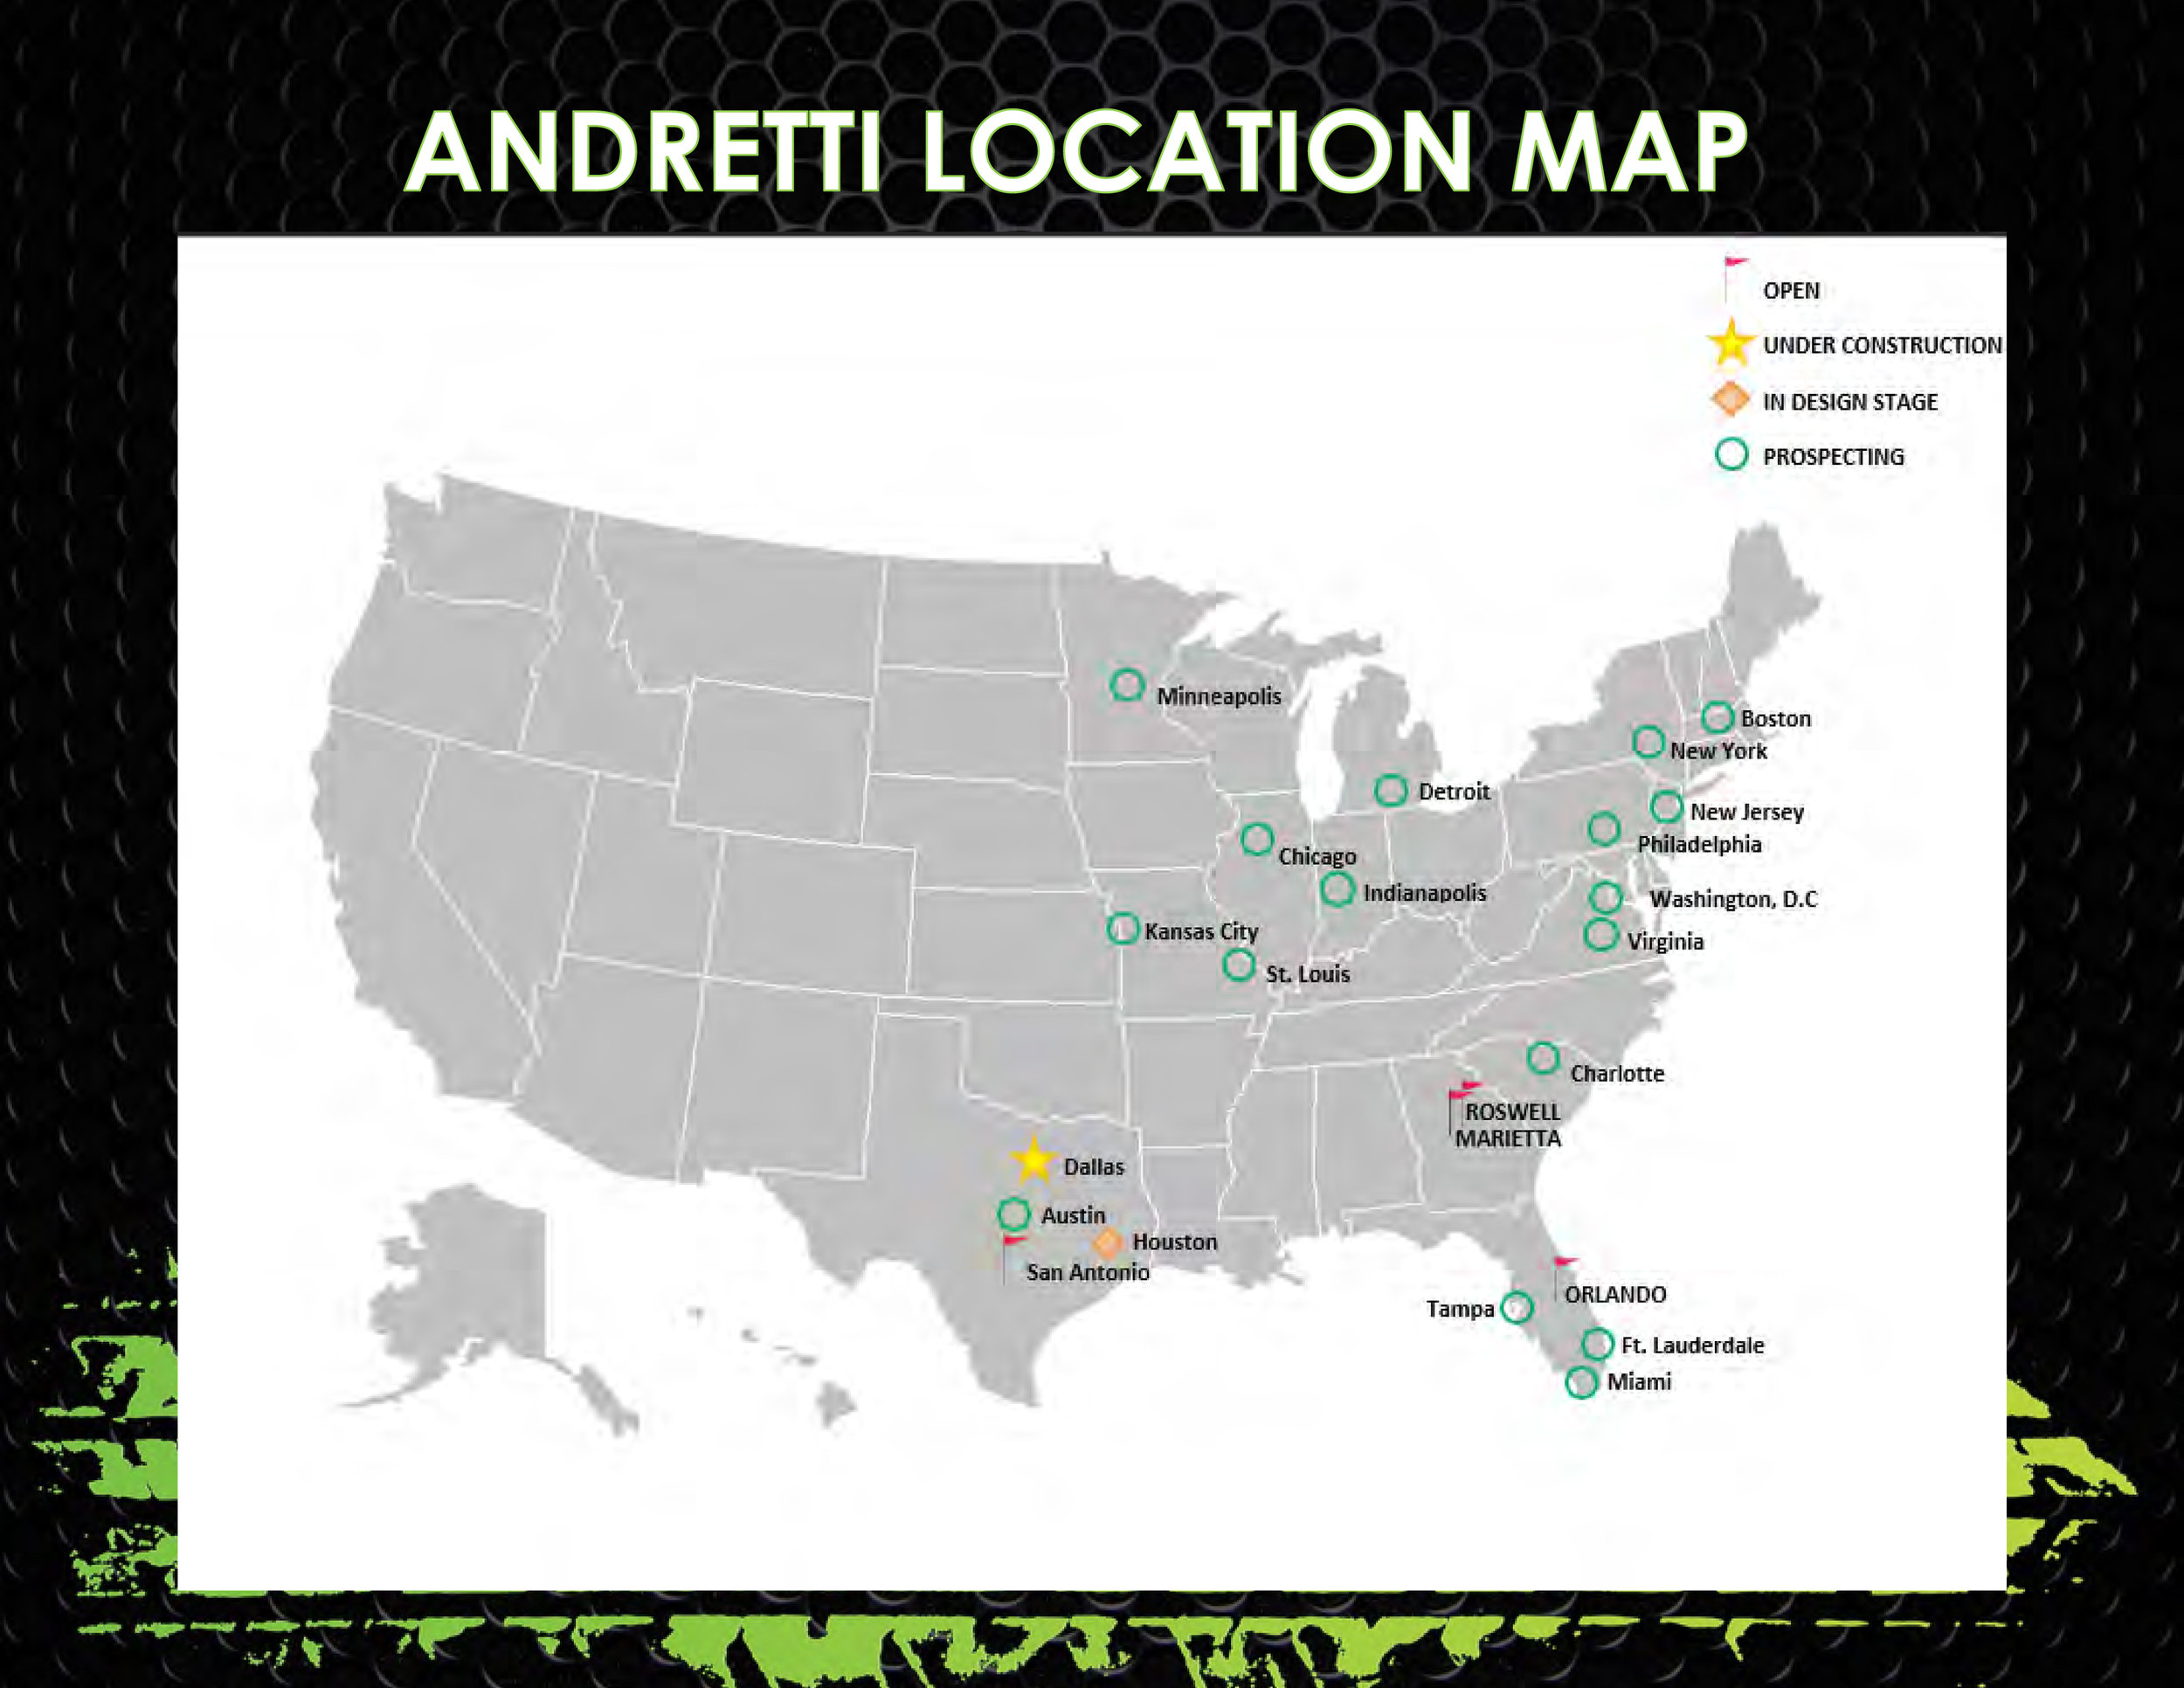 iFly LOCATIONS MAP - CLICK TO ENLARGE